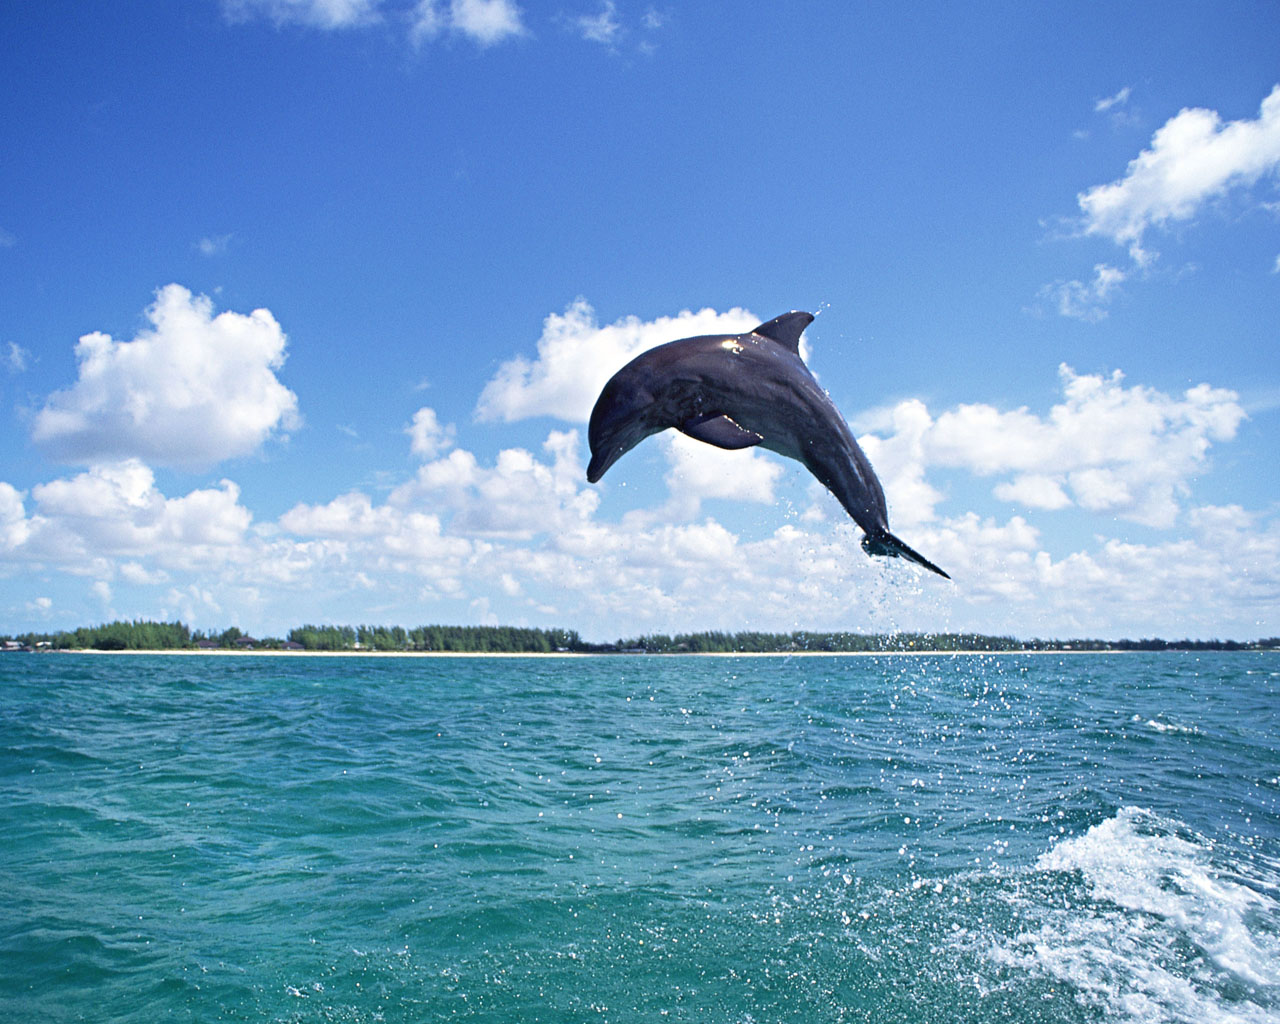 Download High quality Dolphins Wallpaper Num 10 1280 x 1024 1280x1024